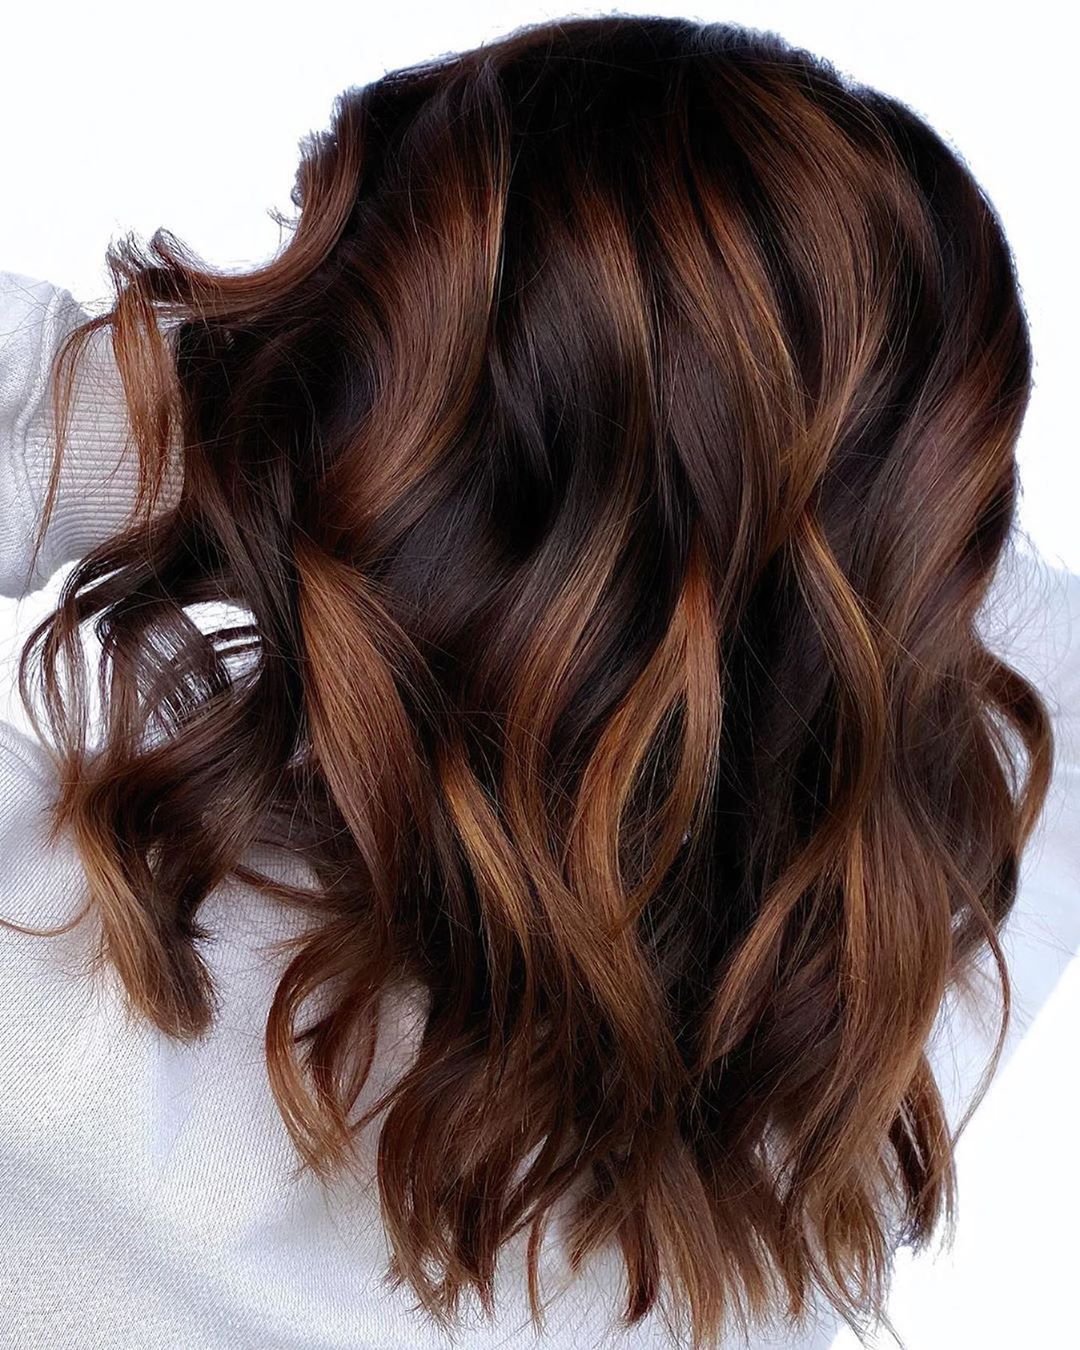 50 Trendy Brown Hair Colors And Brunette Hairstyles For 2021 Hair Adviser Highlights For Dark Brown Hair Hair Styles Dark Hair With Highlights